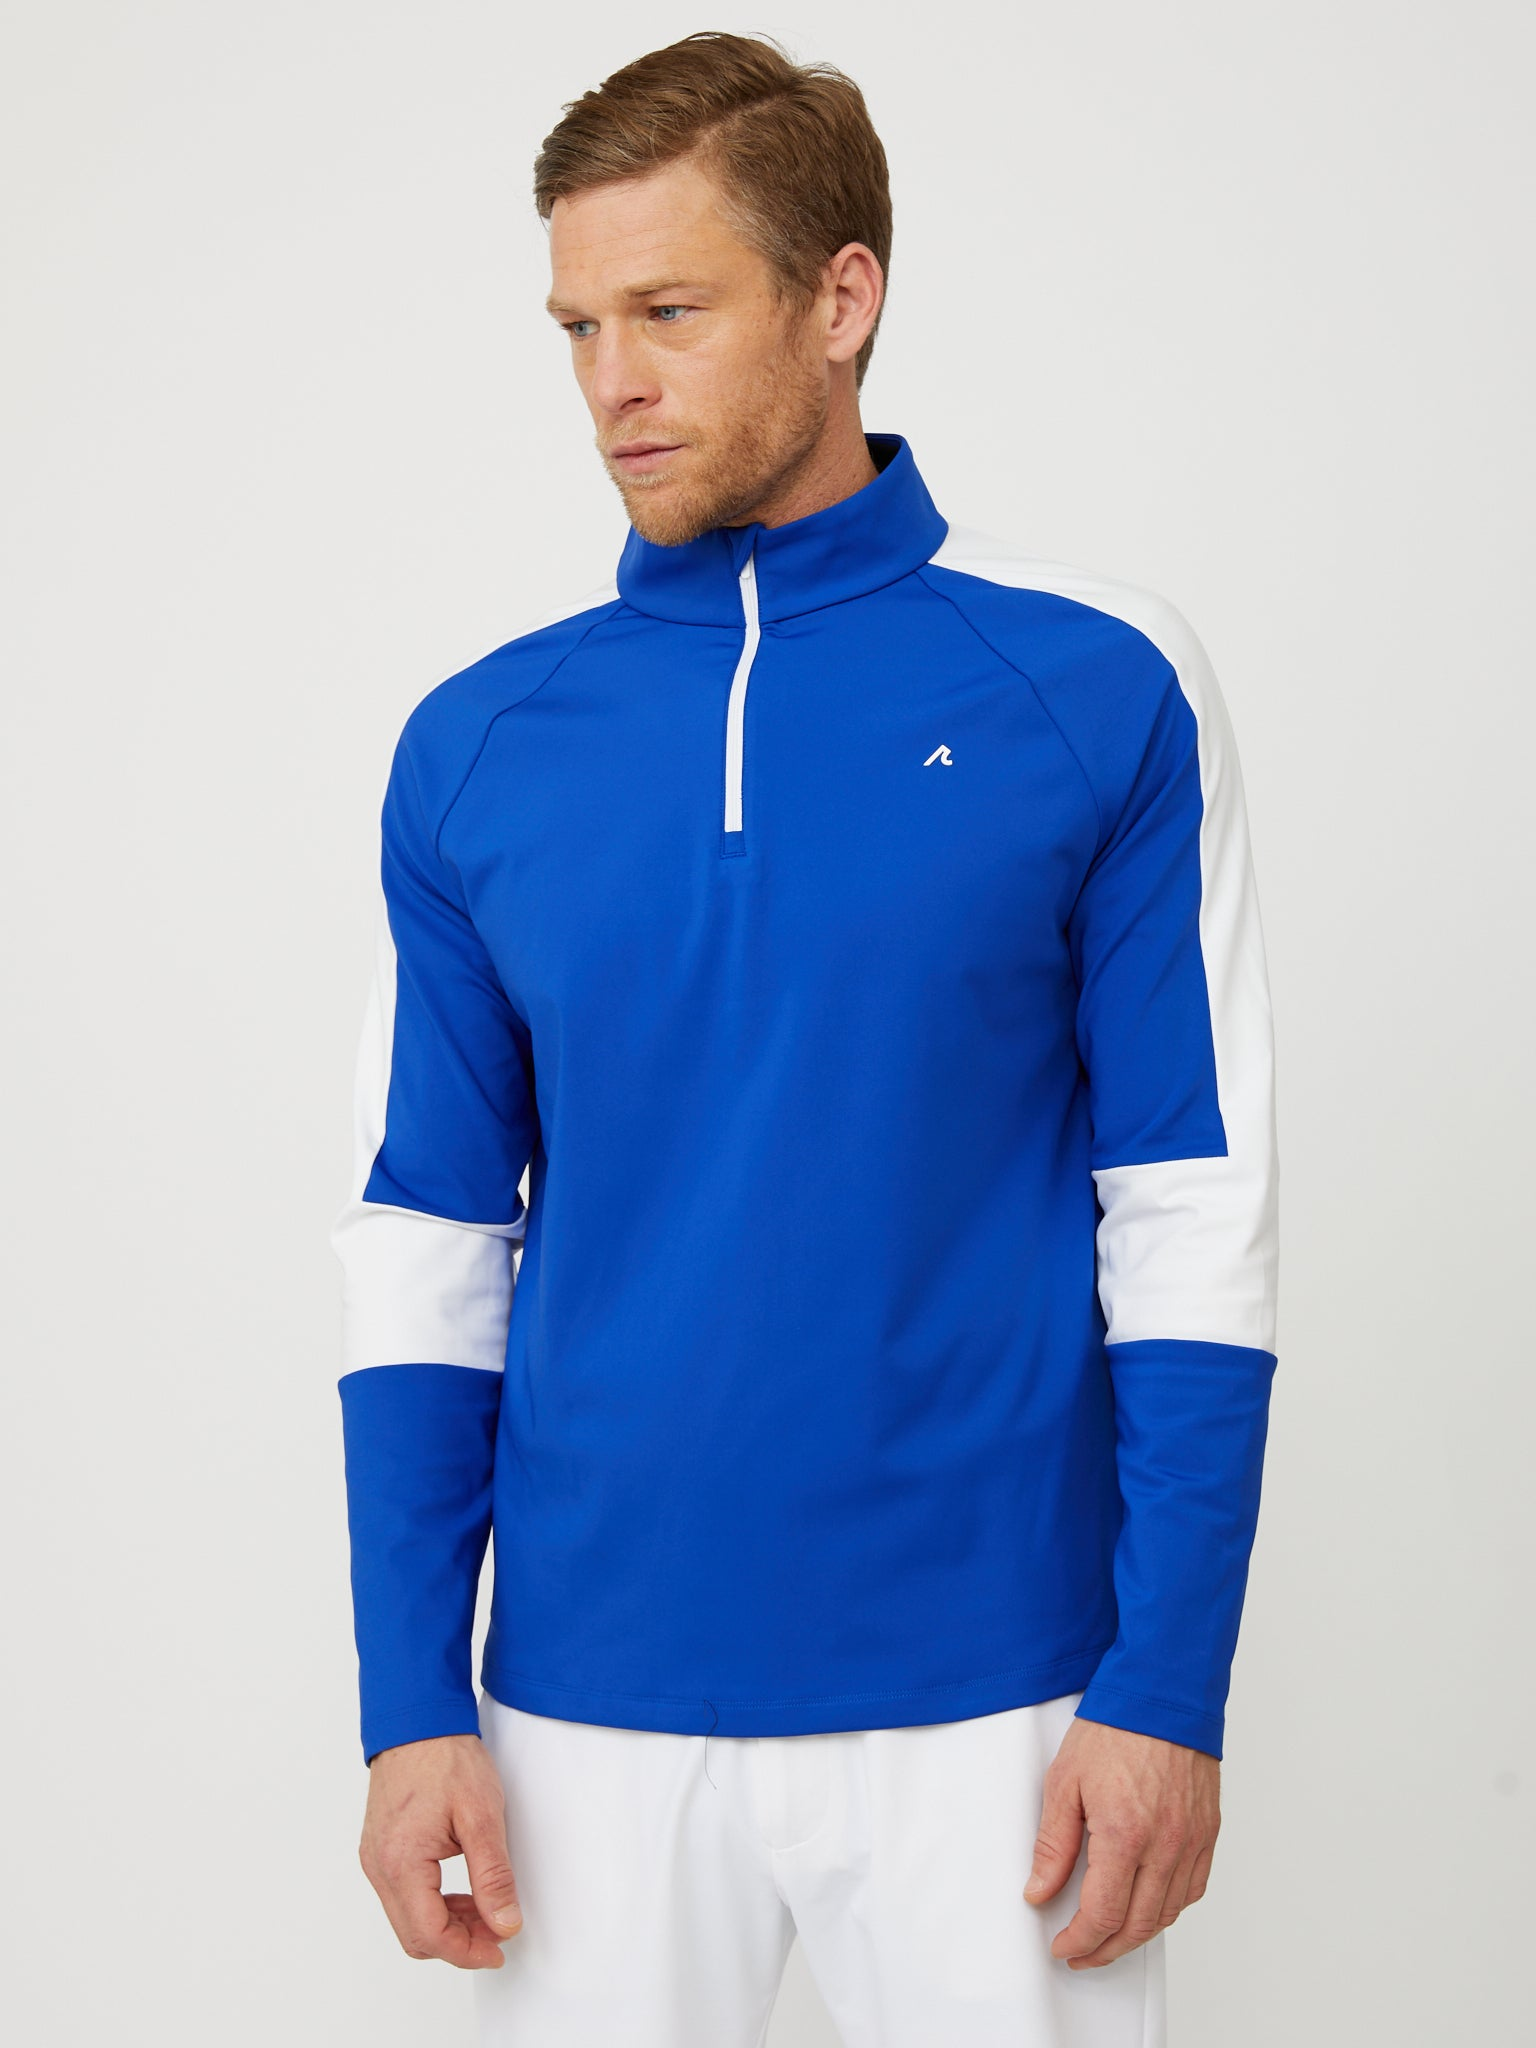 Fowler Quarter Zip in Reflex Blue/White